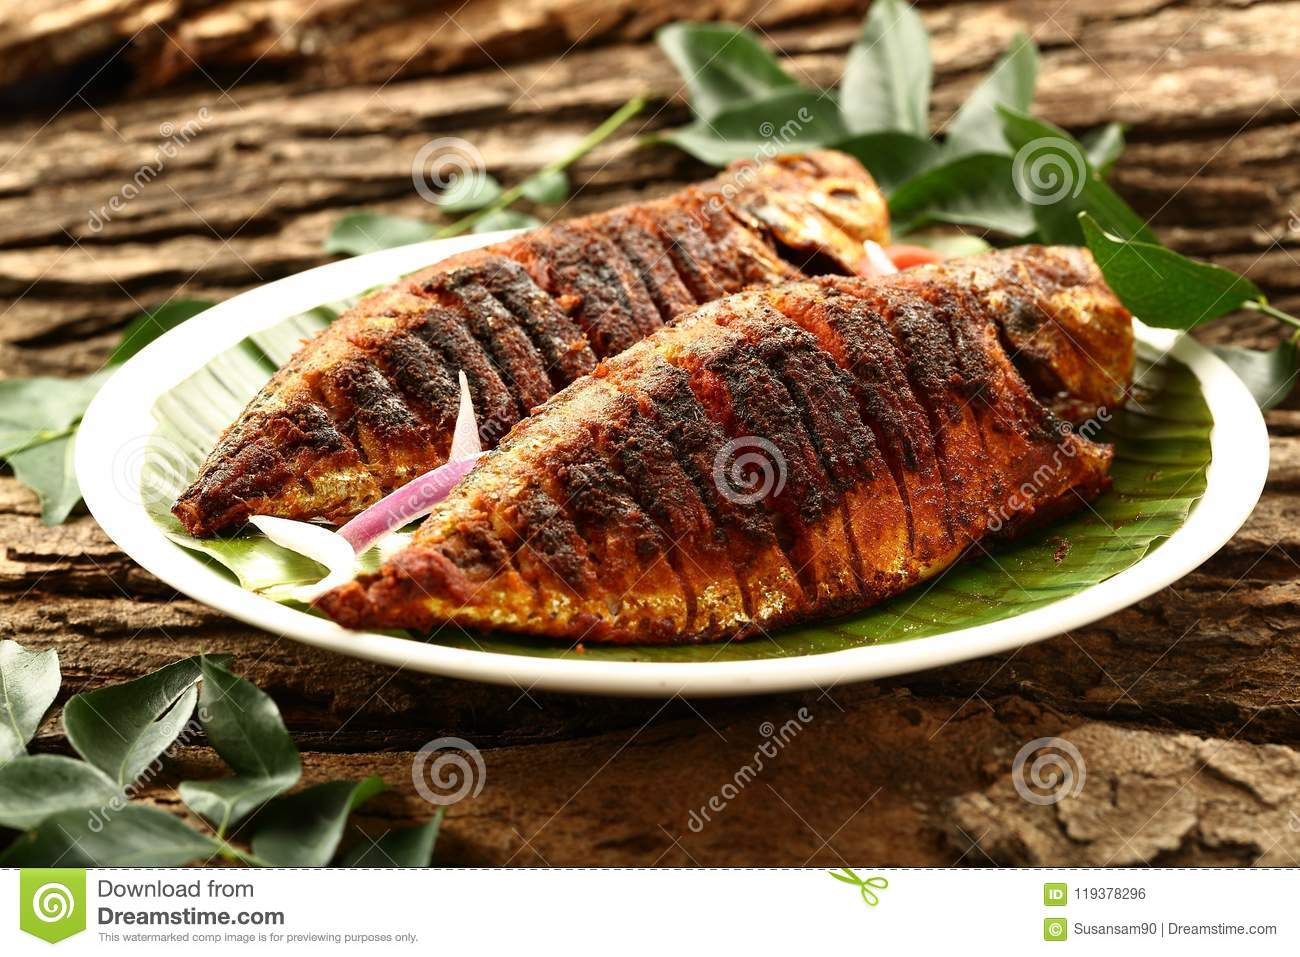 Kerala food homemade fish fry authentic recipe stock photo download comp forumfinder Gallery